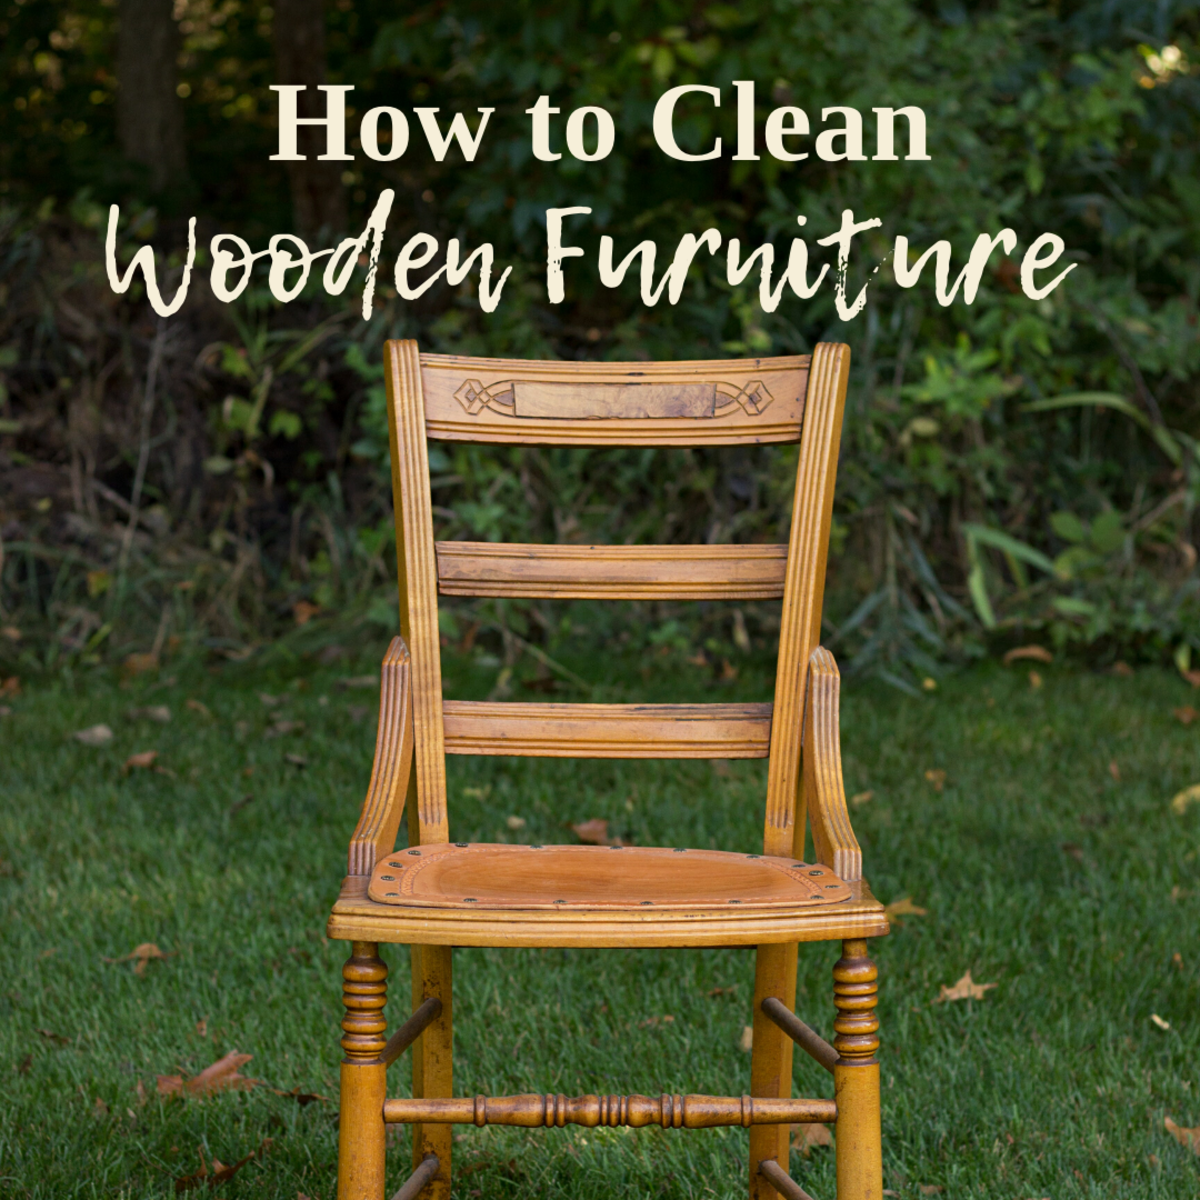 Learn how to clean wood furniture with commercial wood cleaners, dish detergent and water, or TSP.